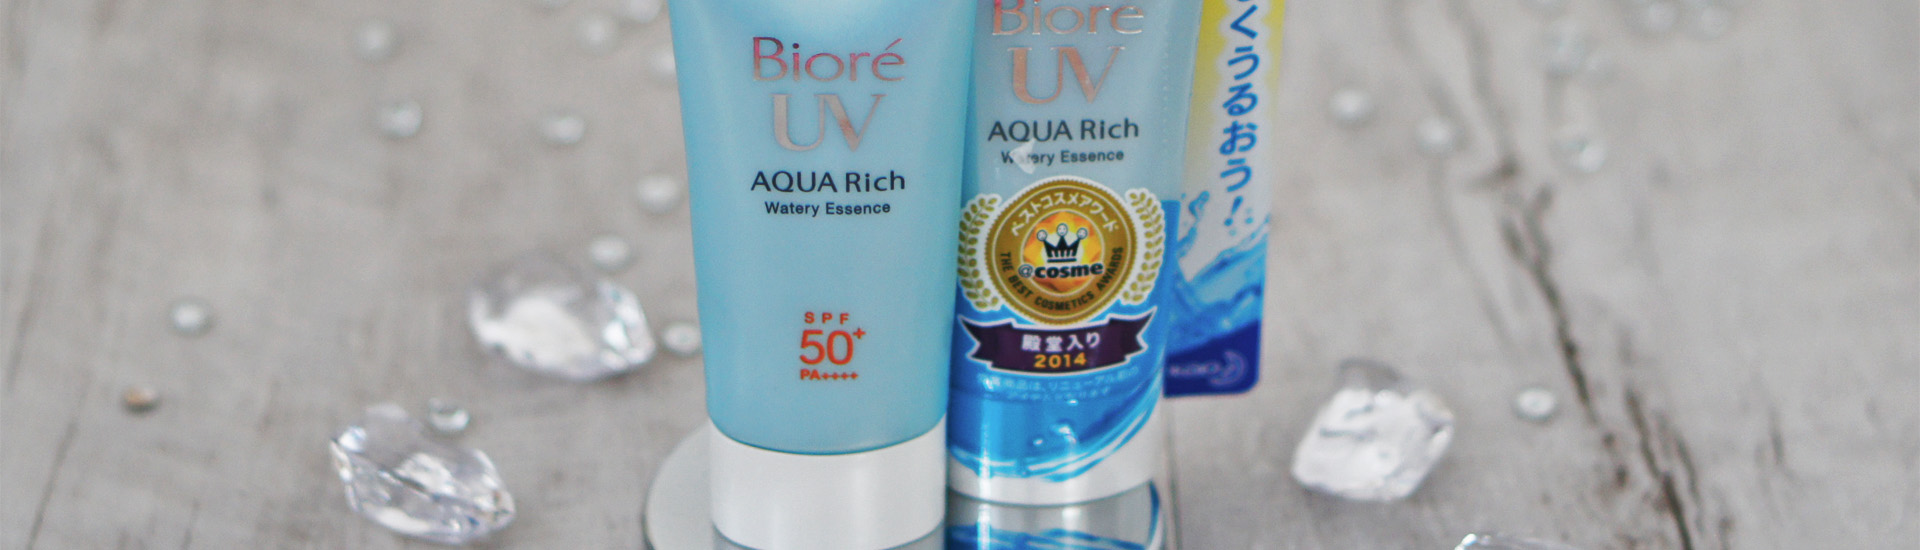 Фавориты: санскрин Biore UV Aqua Rich Watery Essence